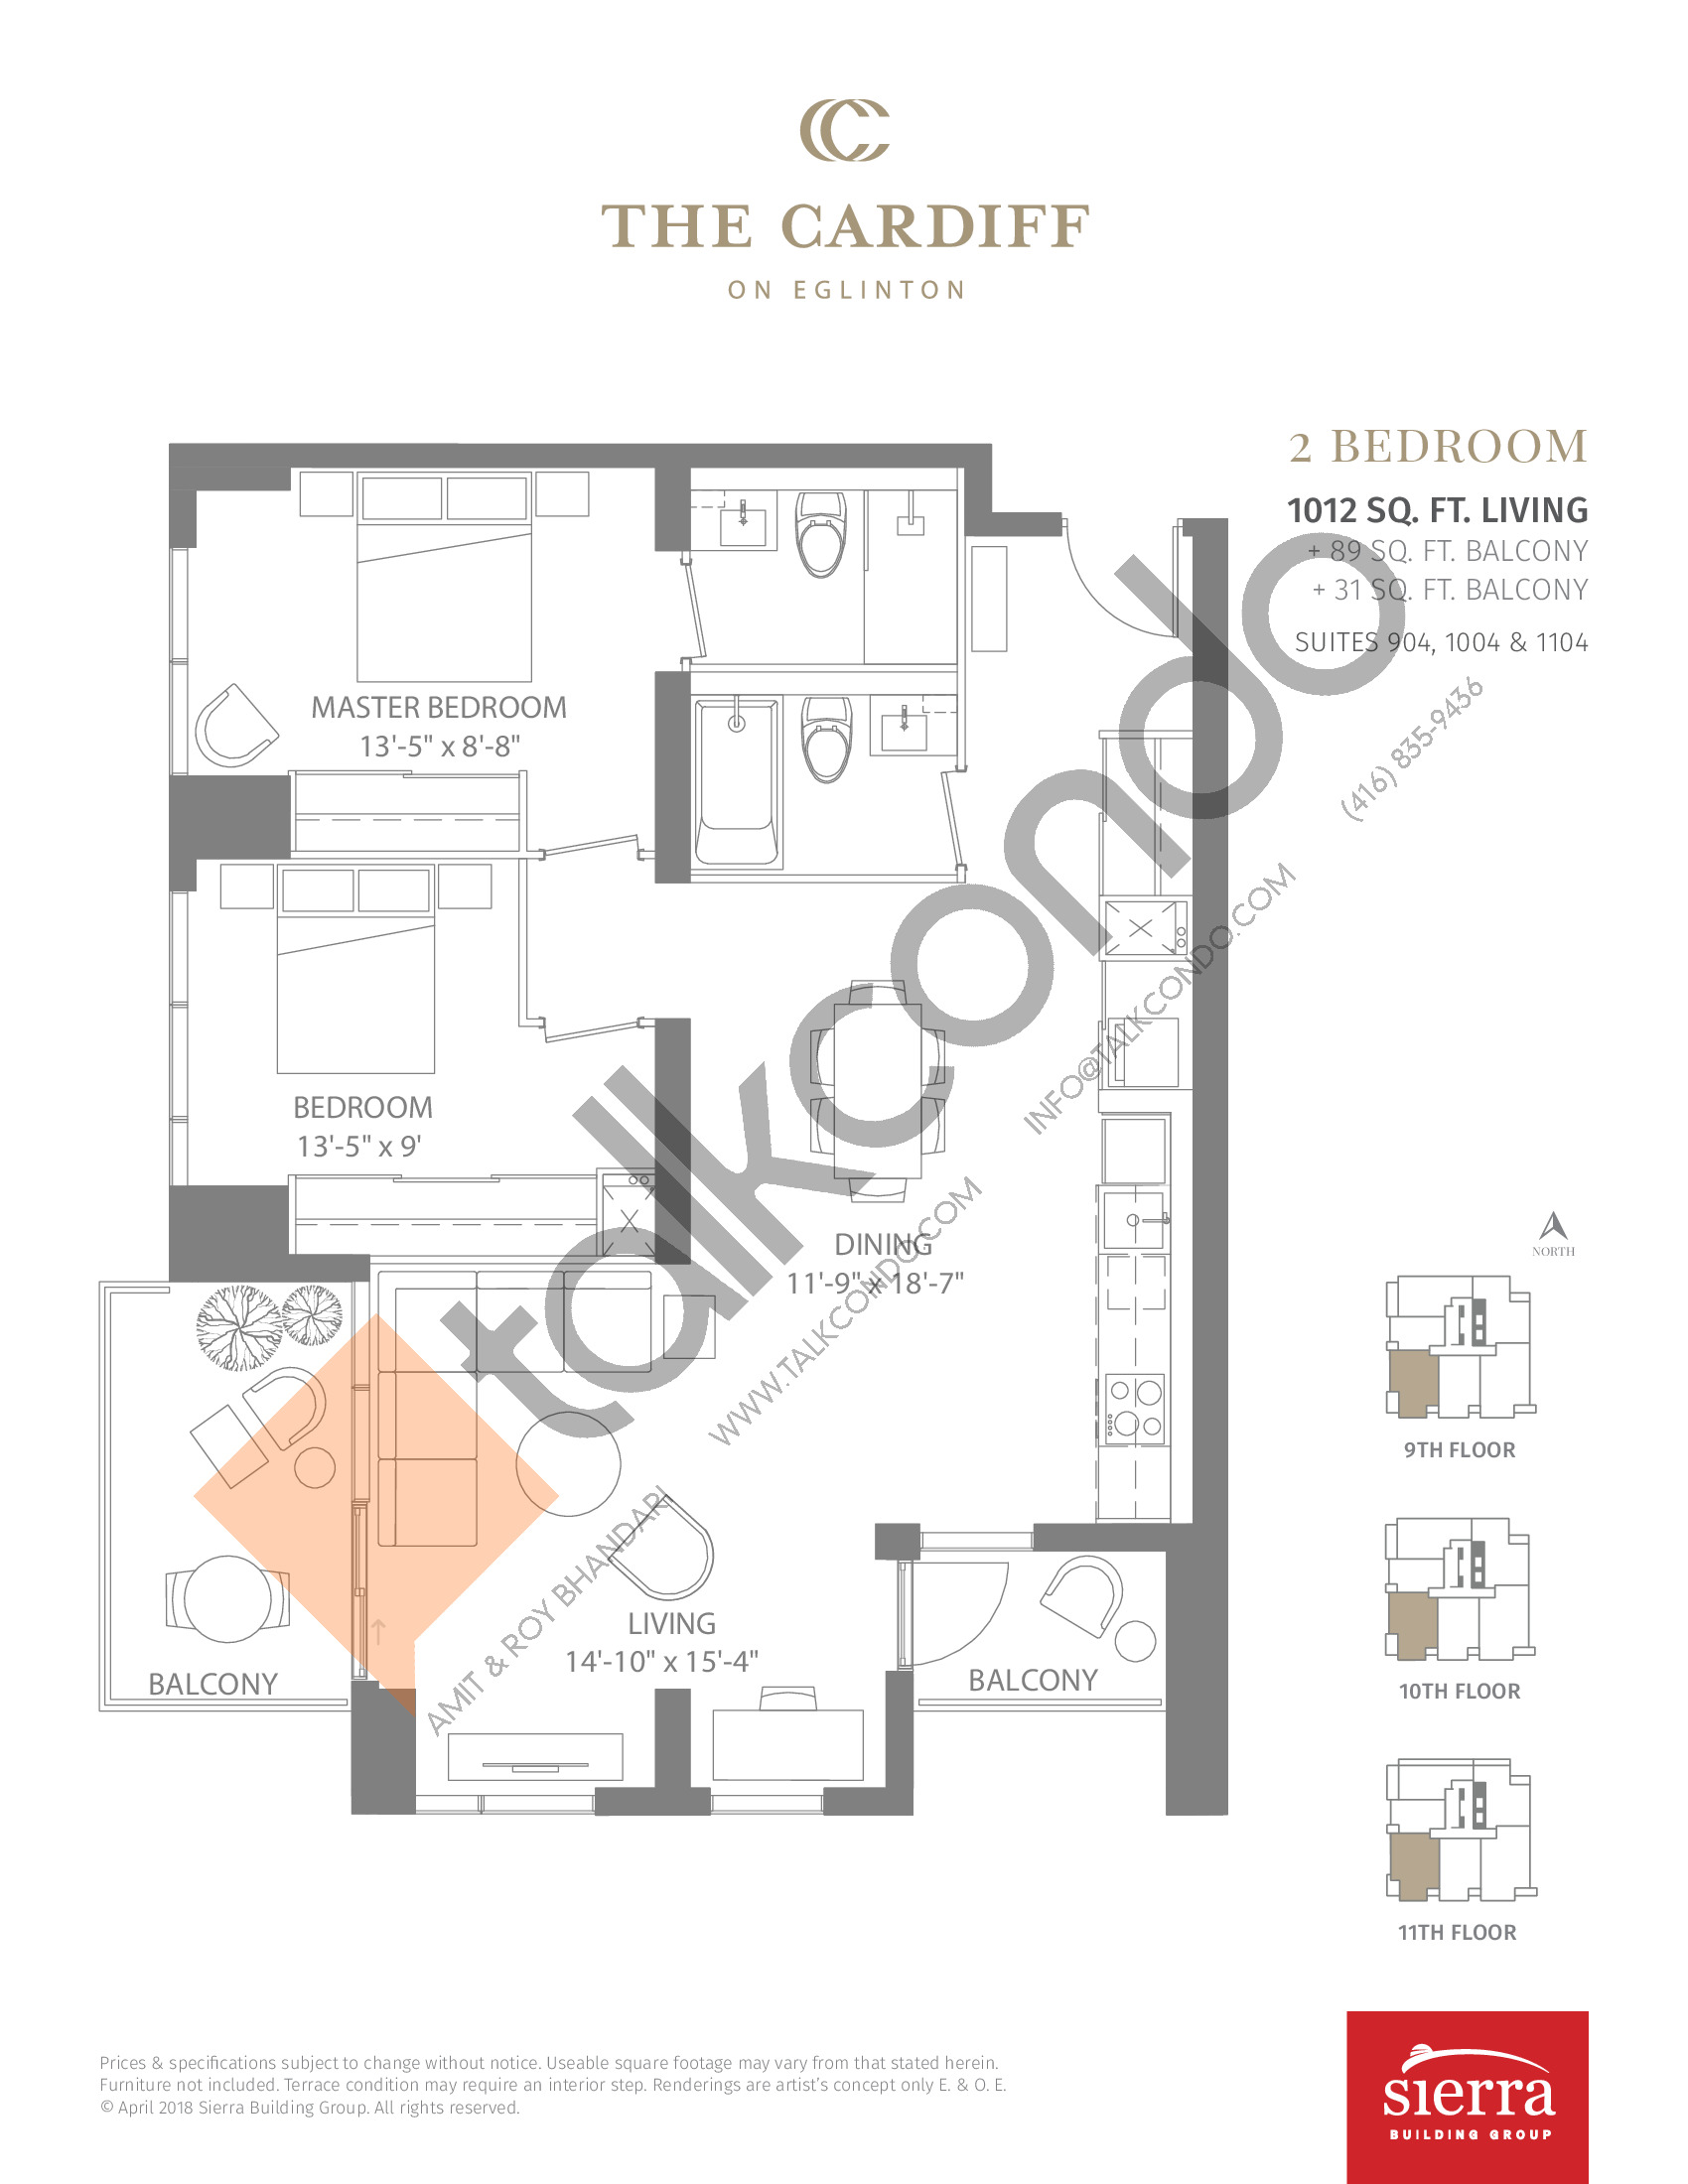 Suites 904, 1004 & 1104 Floor Plan at The Cardiff Condos on Eglinton - 1012 sq.ft